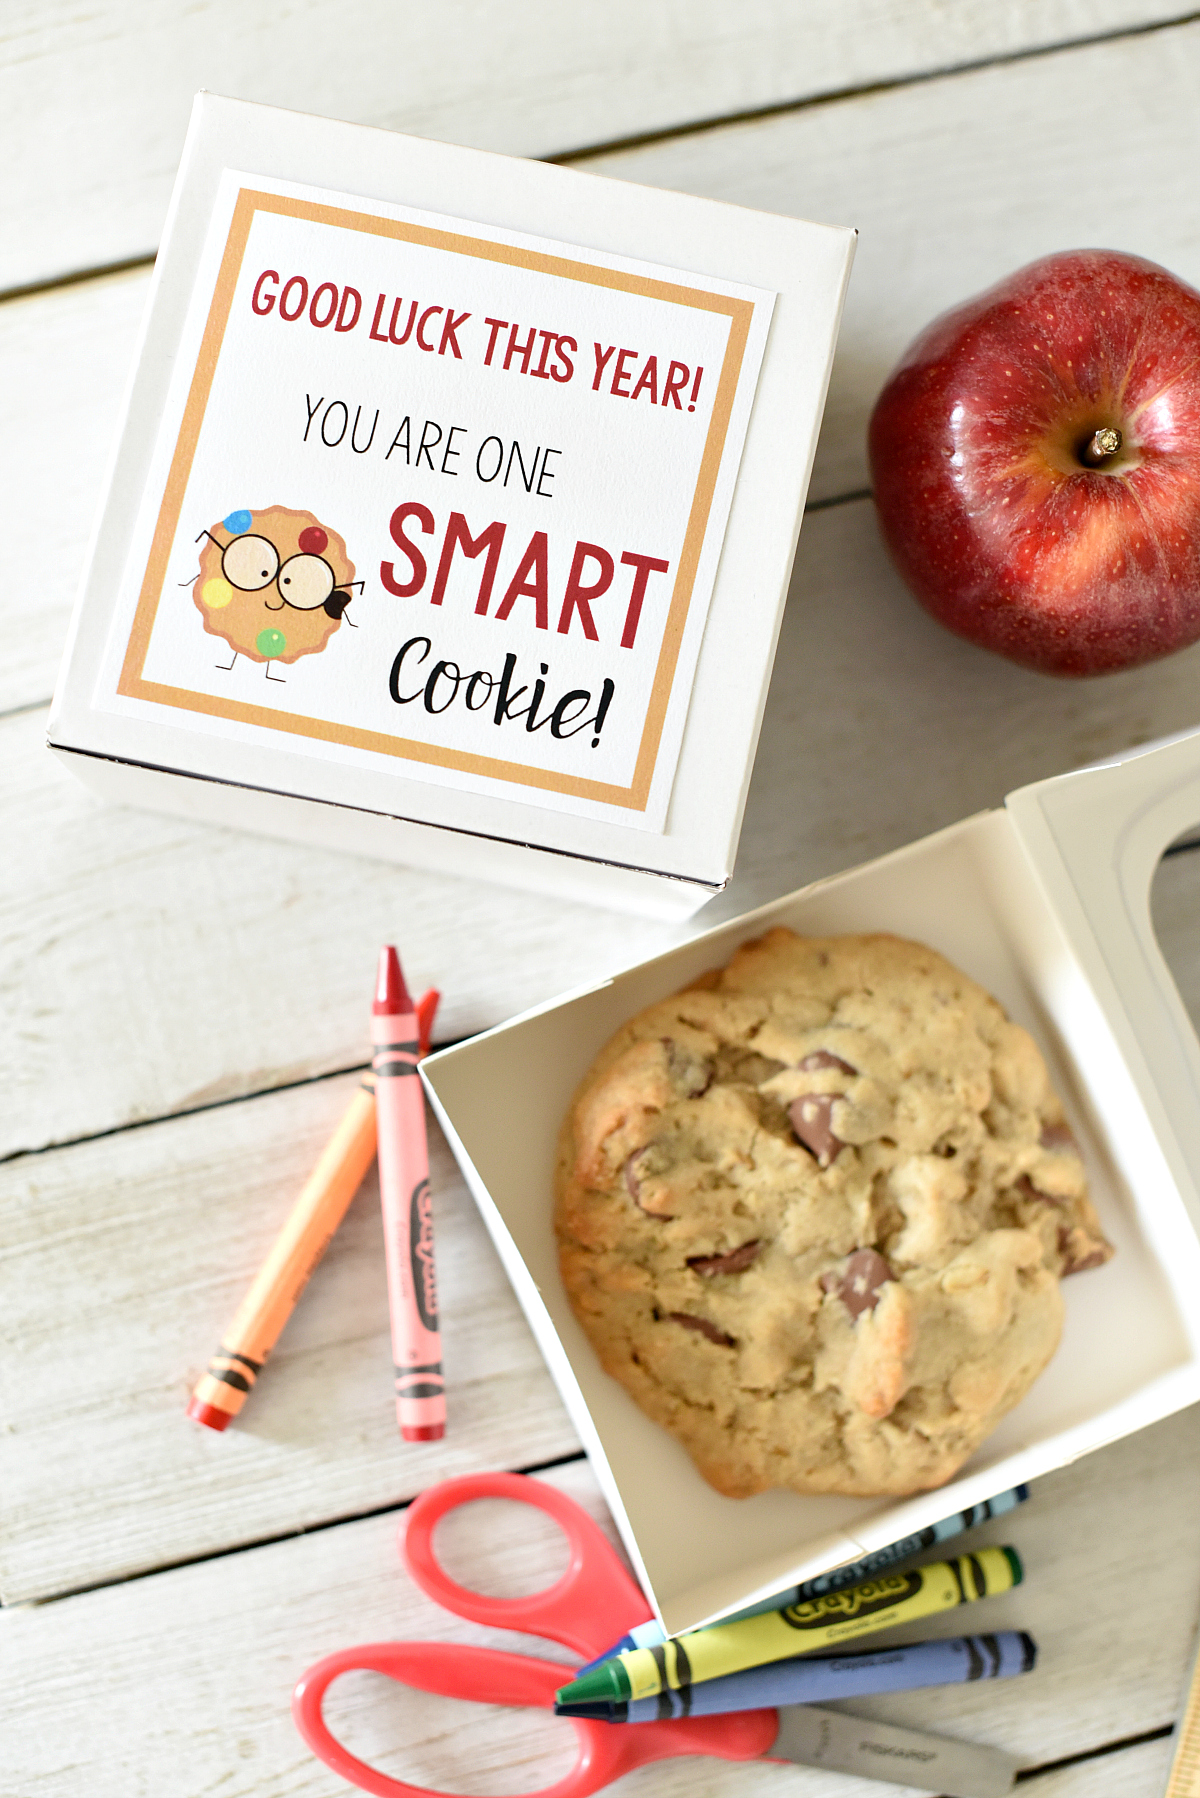 """First Day of School Gifts: This cute """"Smart Cookie"""" gift is fun for students on the first day of school. All you have to do is grab a cookie and add a tag and you're all set for back to school fun #backtoschool #kids #kidsgifts #giftideas"""